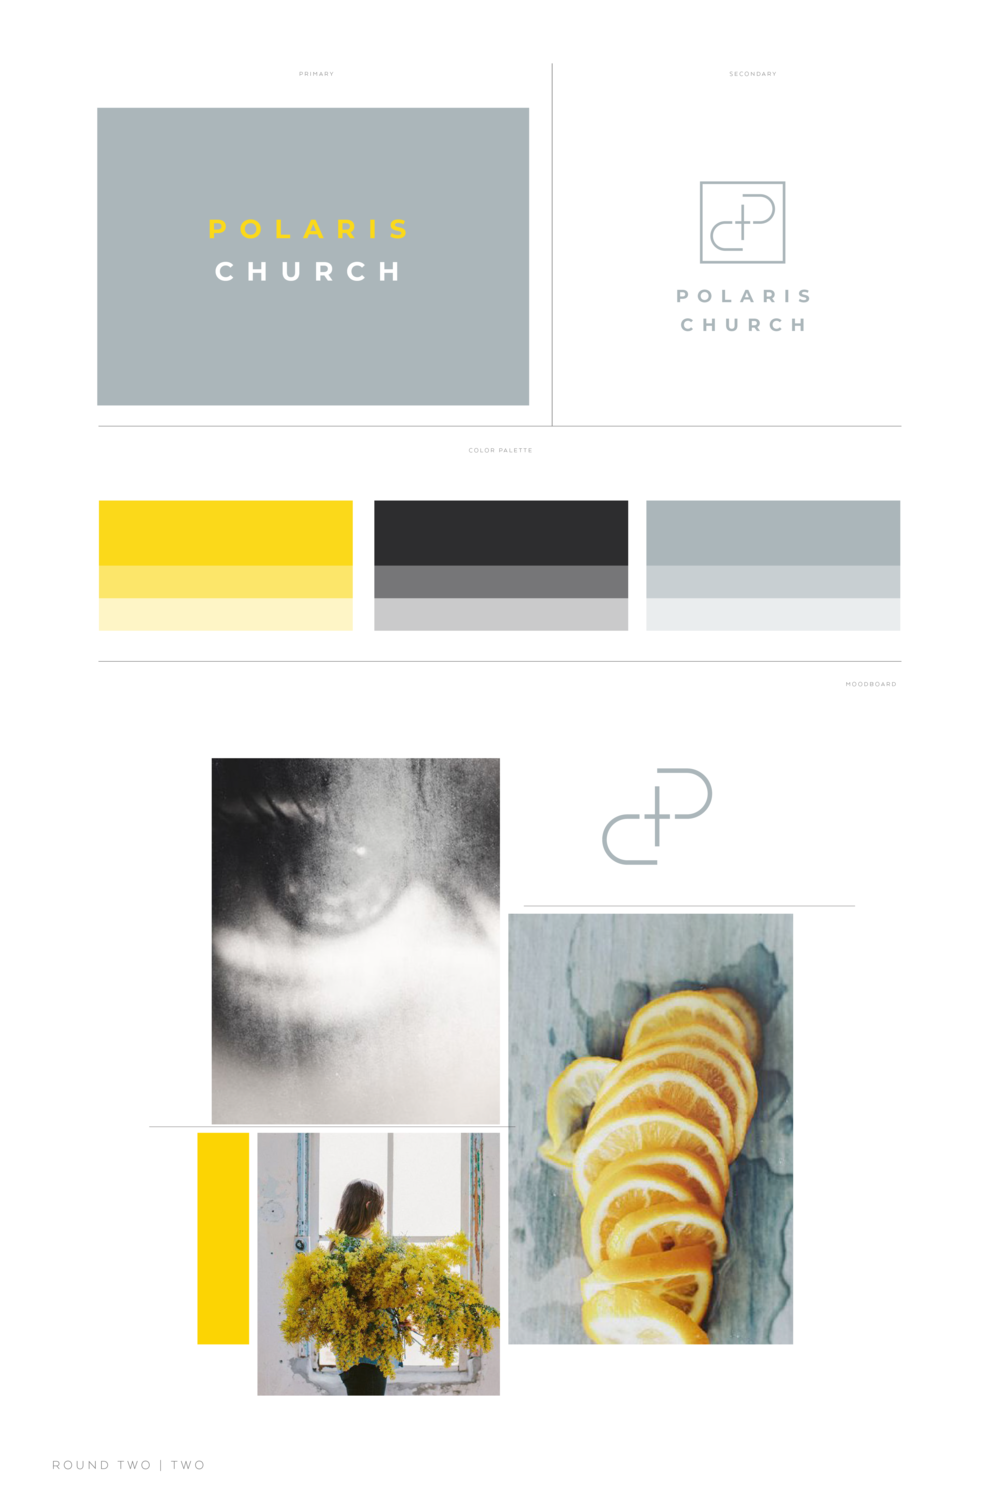 POLARISCHURCH_HONOR_BRANDBOARD_02.png